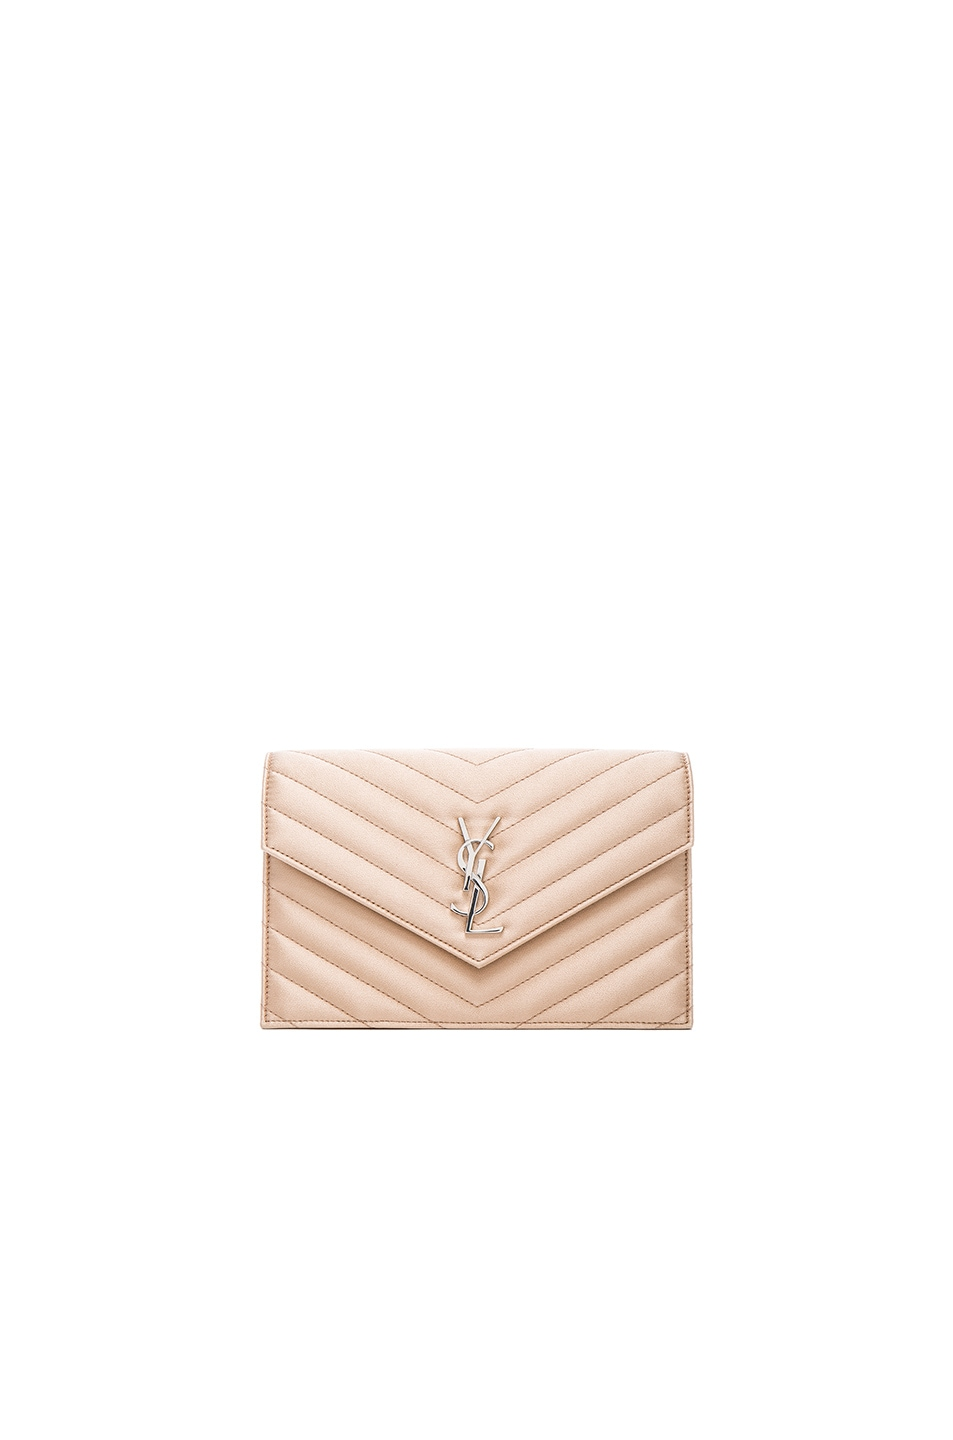 b680fbb329c Image 1 of Saint Laurent Monogram Quilted Satin Envelope Chain Wallet in  Black & Nude